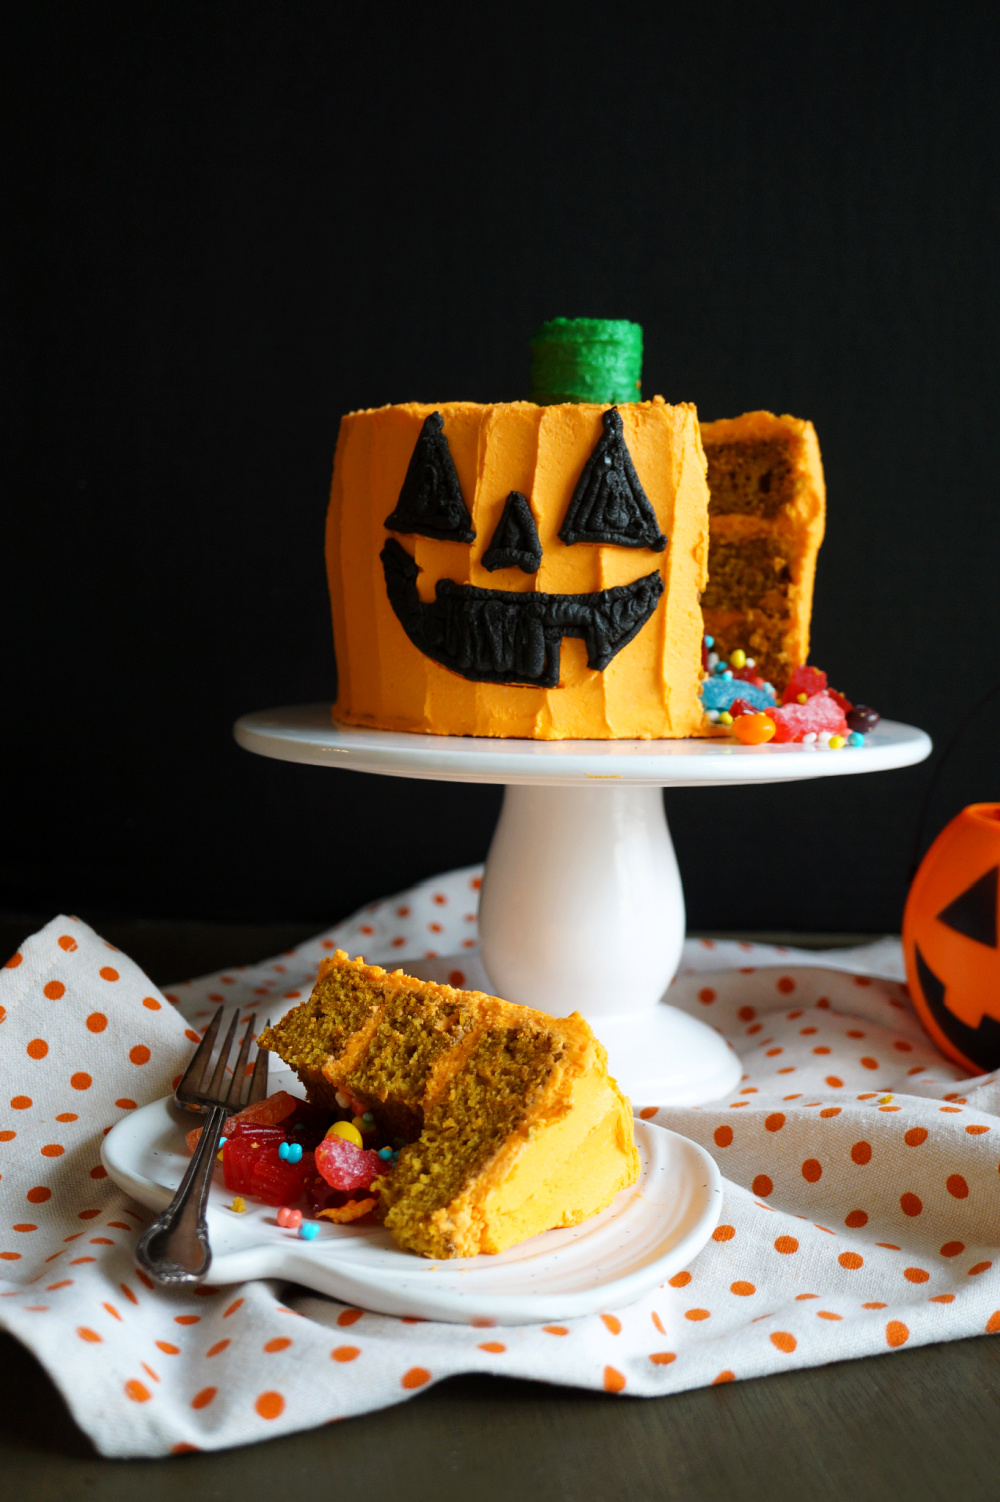 jack o'lantern cake with candy and slice on plate